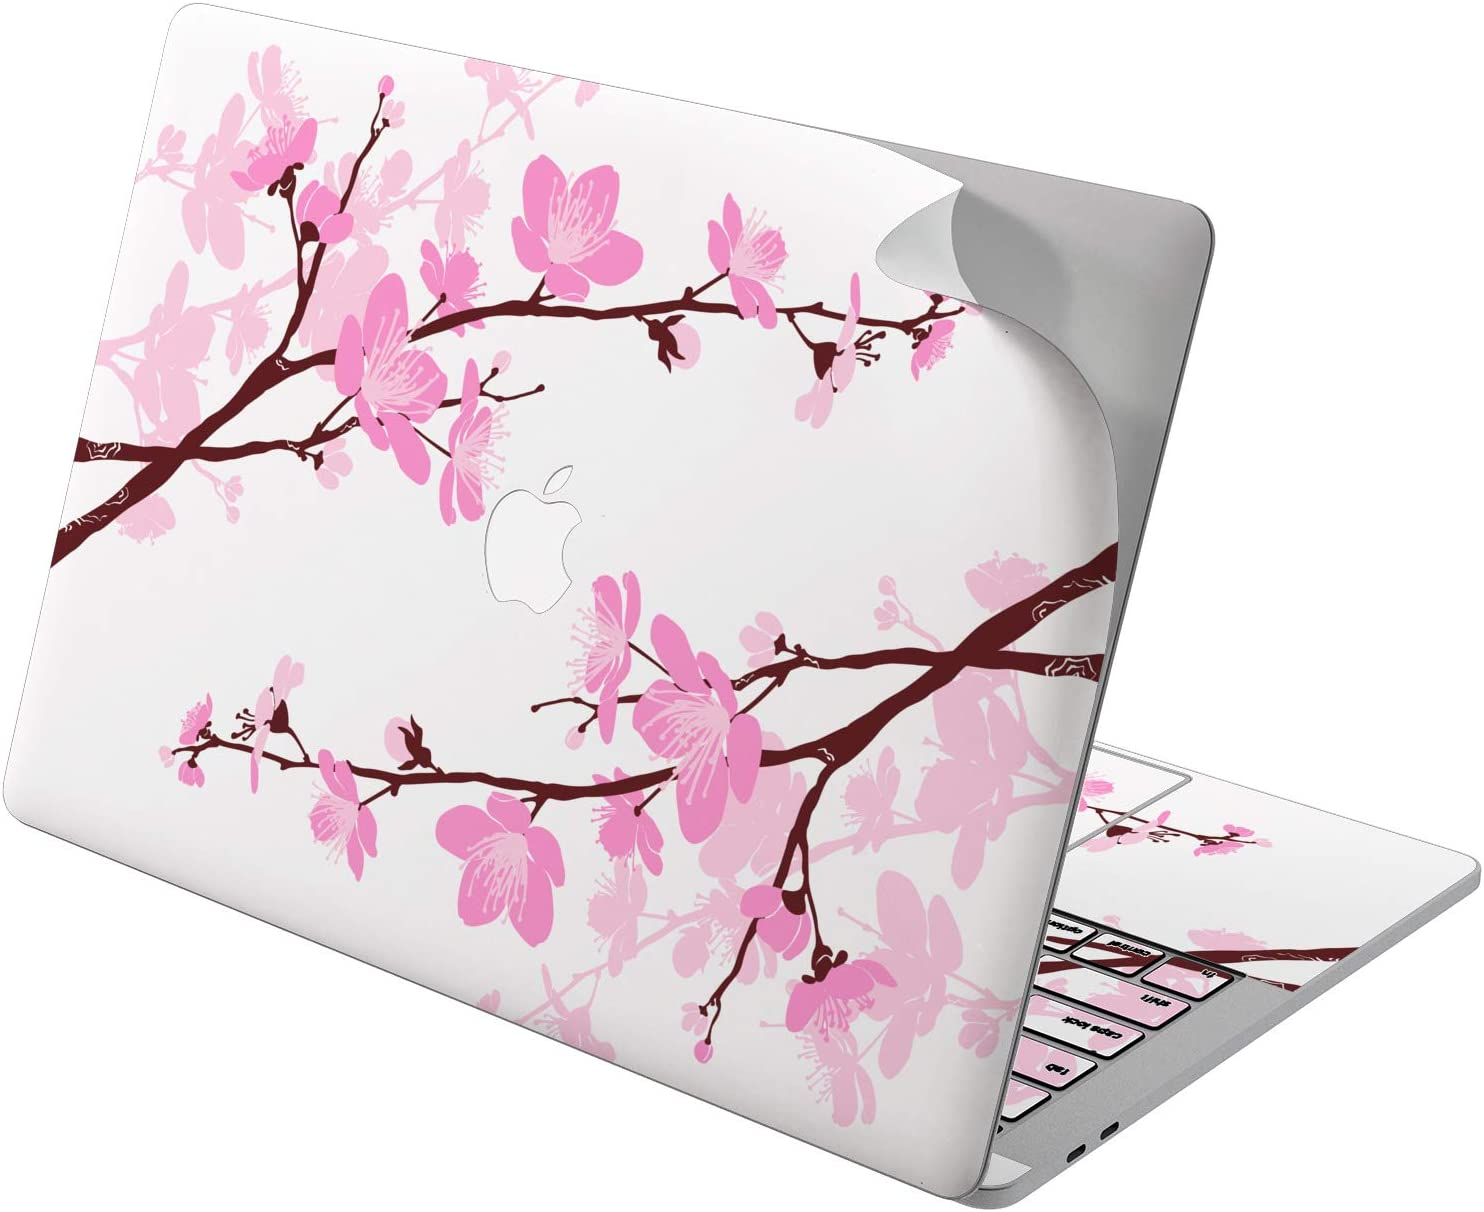 "Cavka Vinyl Decal Skin for Apple MacBook Pro 13"" 2019 15"" 2018 Air 13"" 2020 Retina 2015 Mac 11"" Mac 12"" Protective Sticker Print Sakura Art Design Girl Pink Laptop Flowers Cherry Cover Branch Blossom"